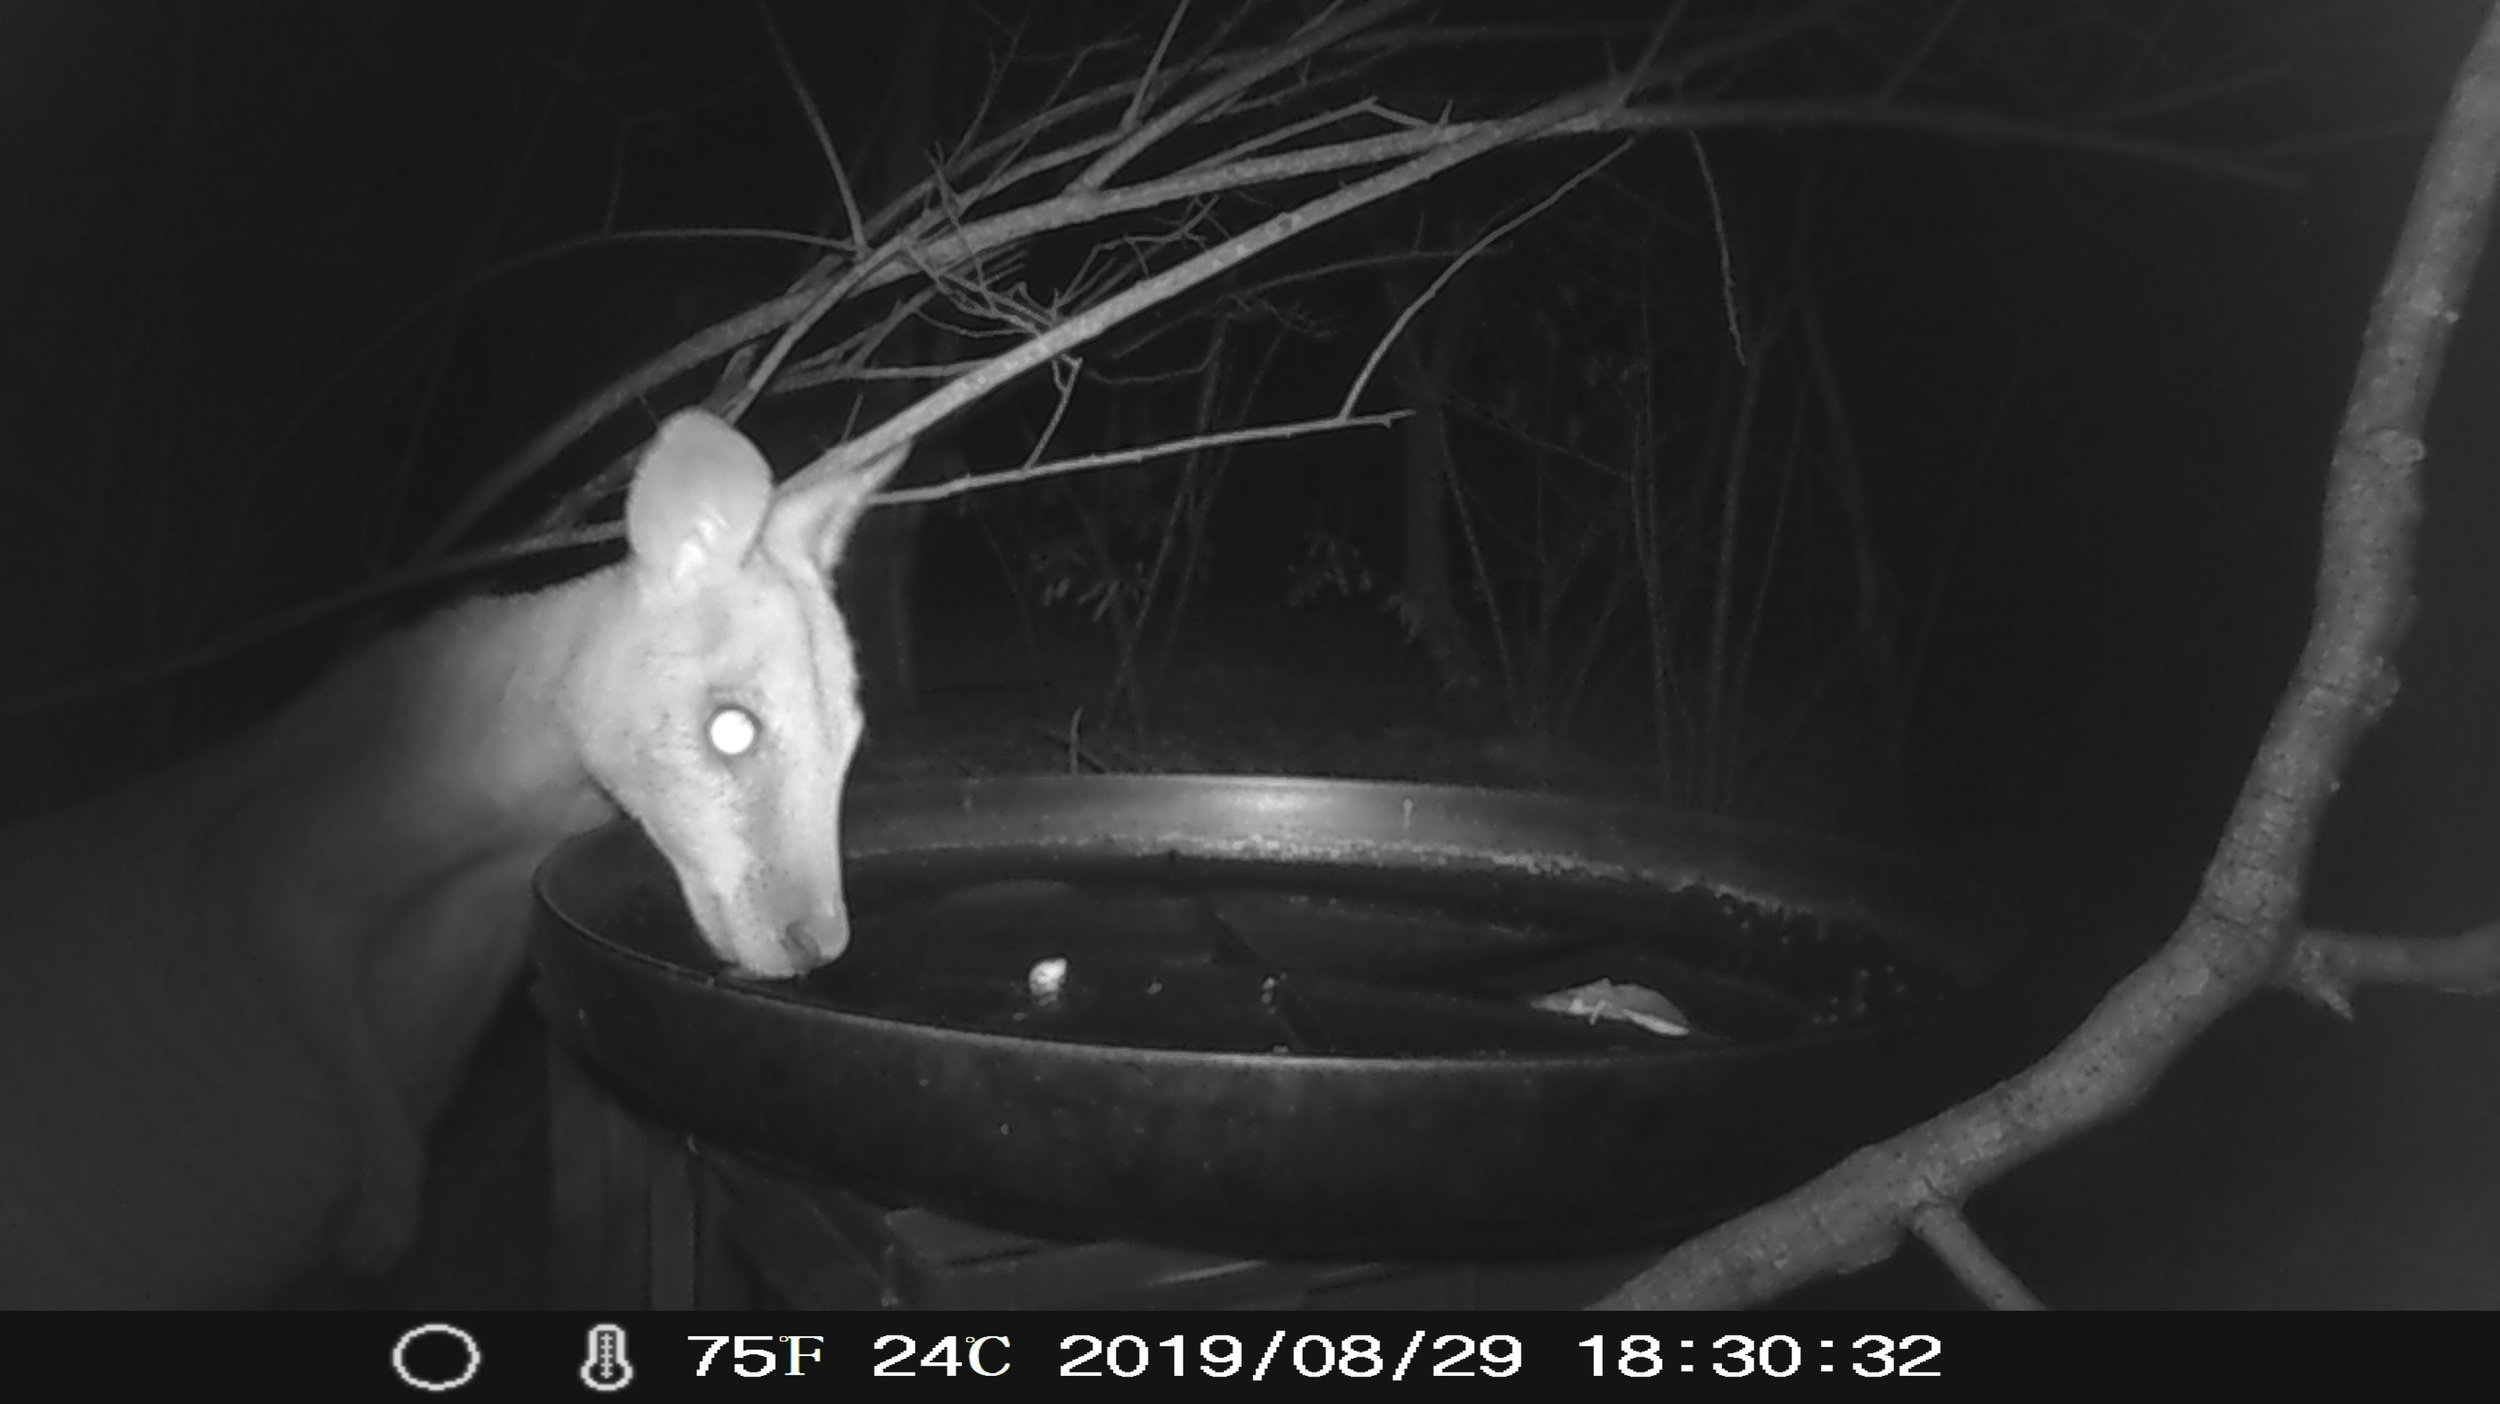 An Agile Wallaby sips water but fortunately doesn't knock over the bird bath (something that frequently happens overnight due to the wallabies).